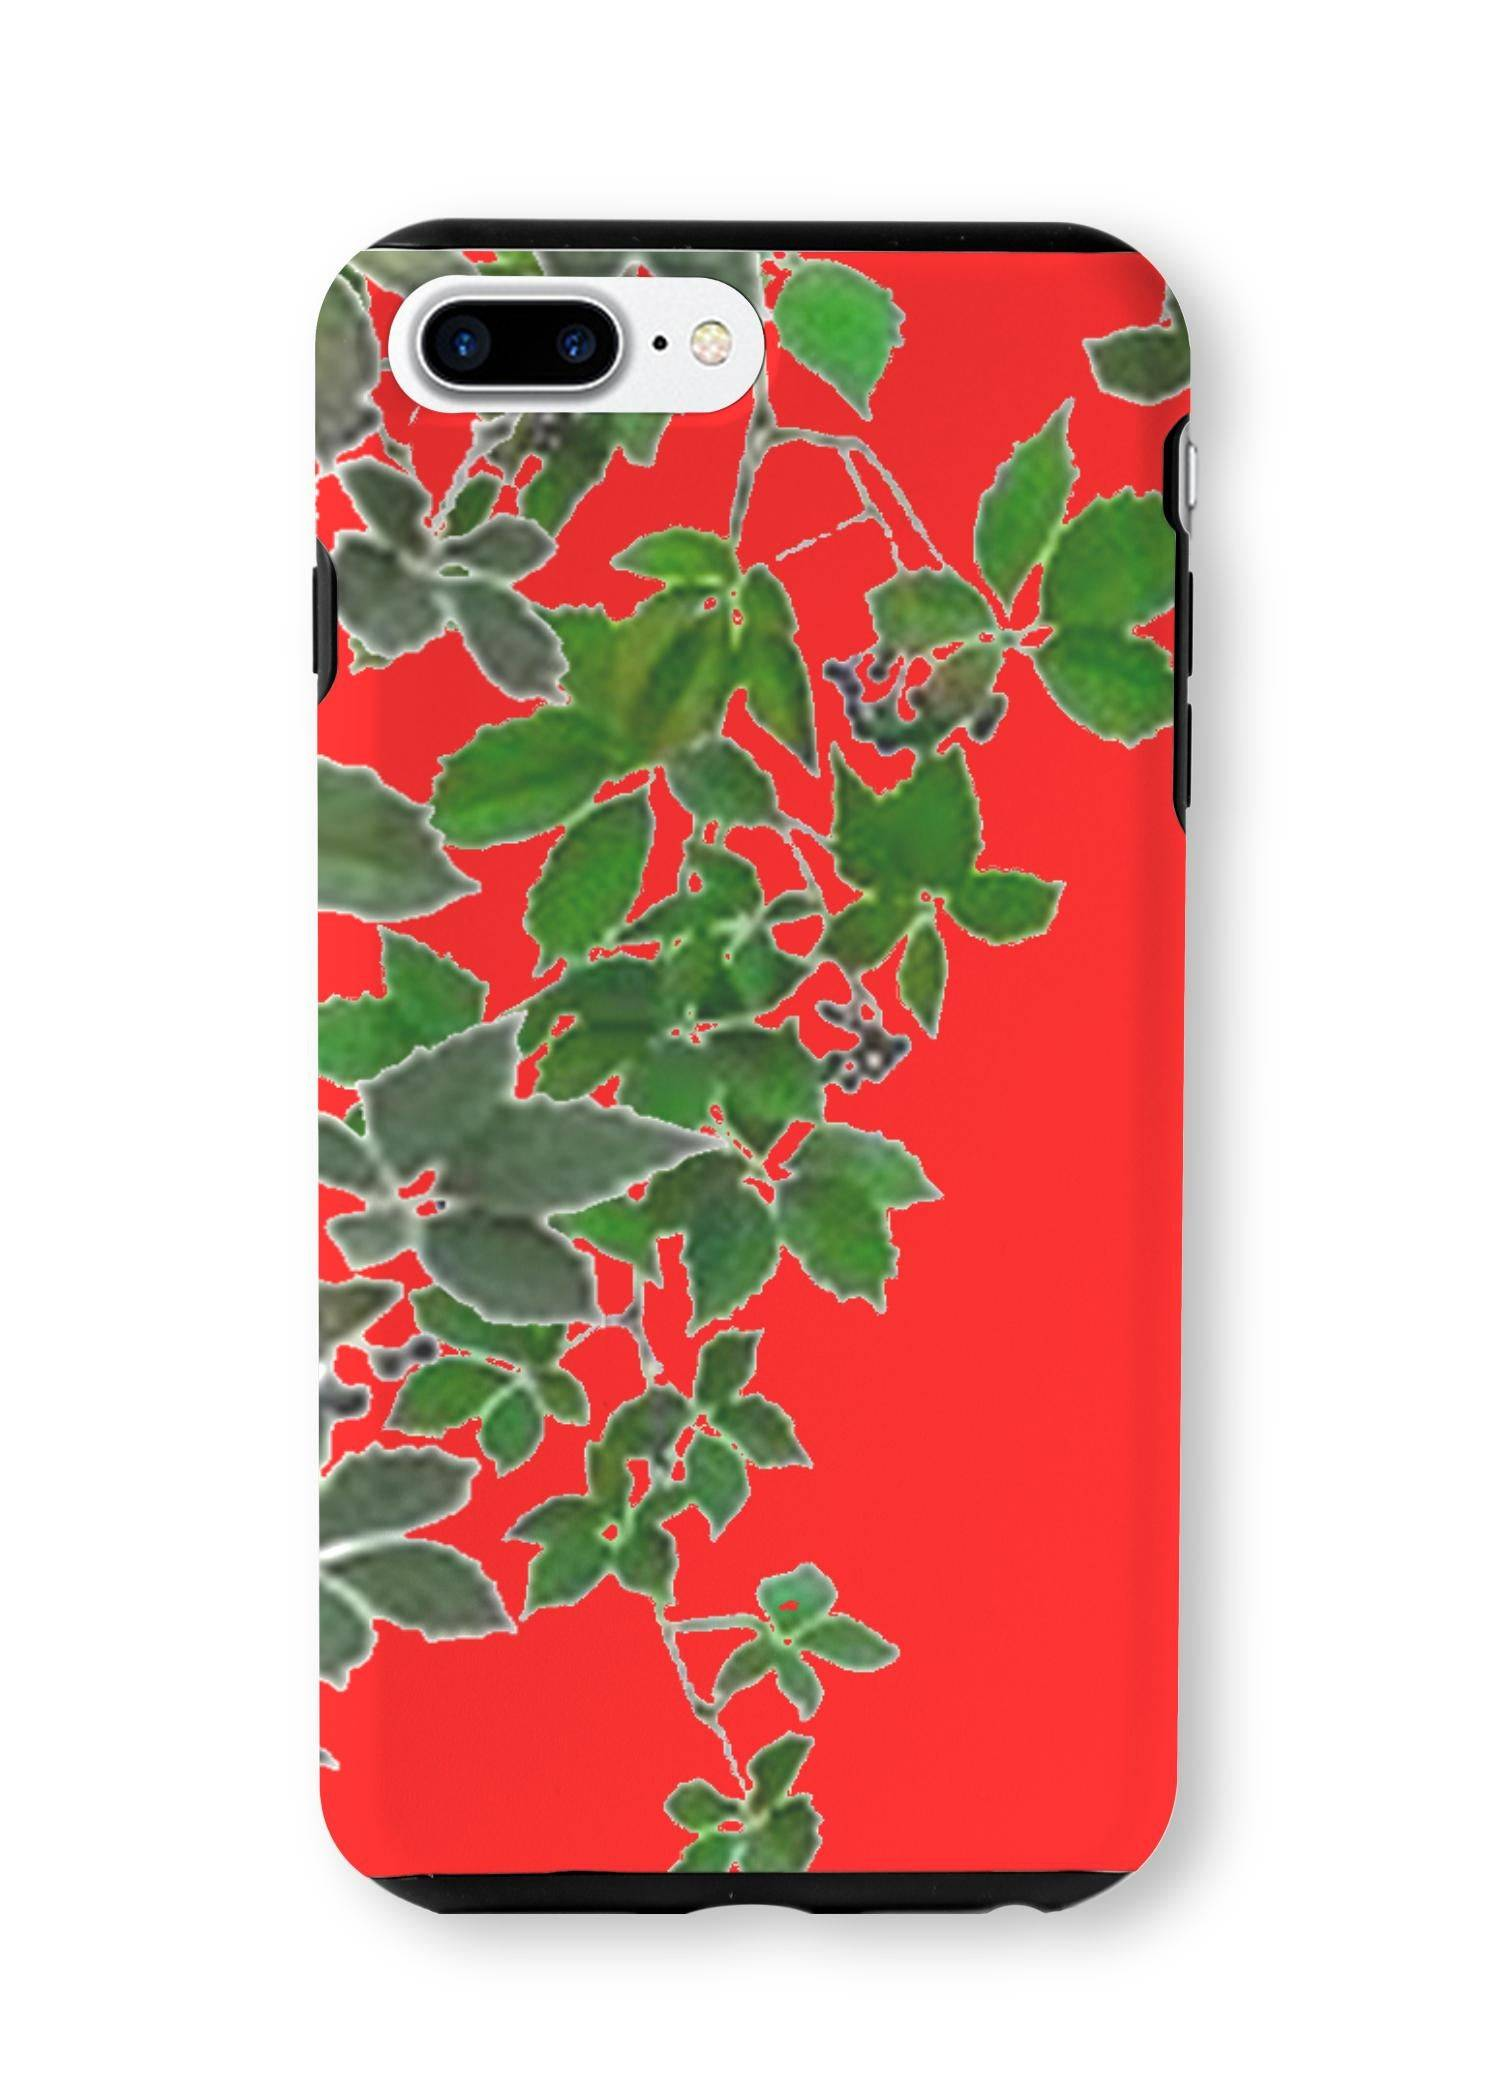 VIDA iPhone Case - Red Hanging Home Decor  2 by VIDA Original Artist  - Size: iPhone 7/8 PLUS / Tough